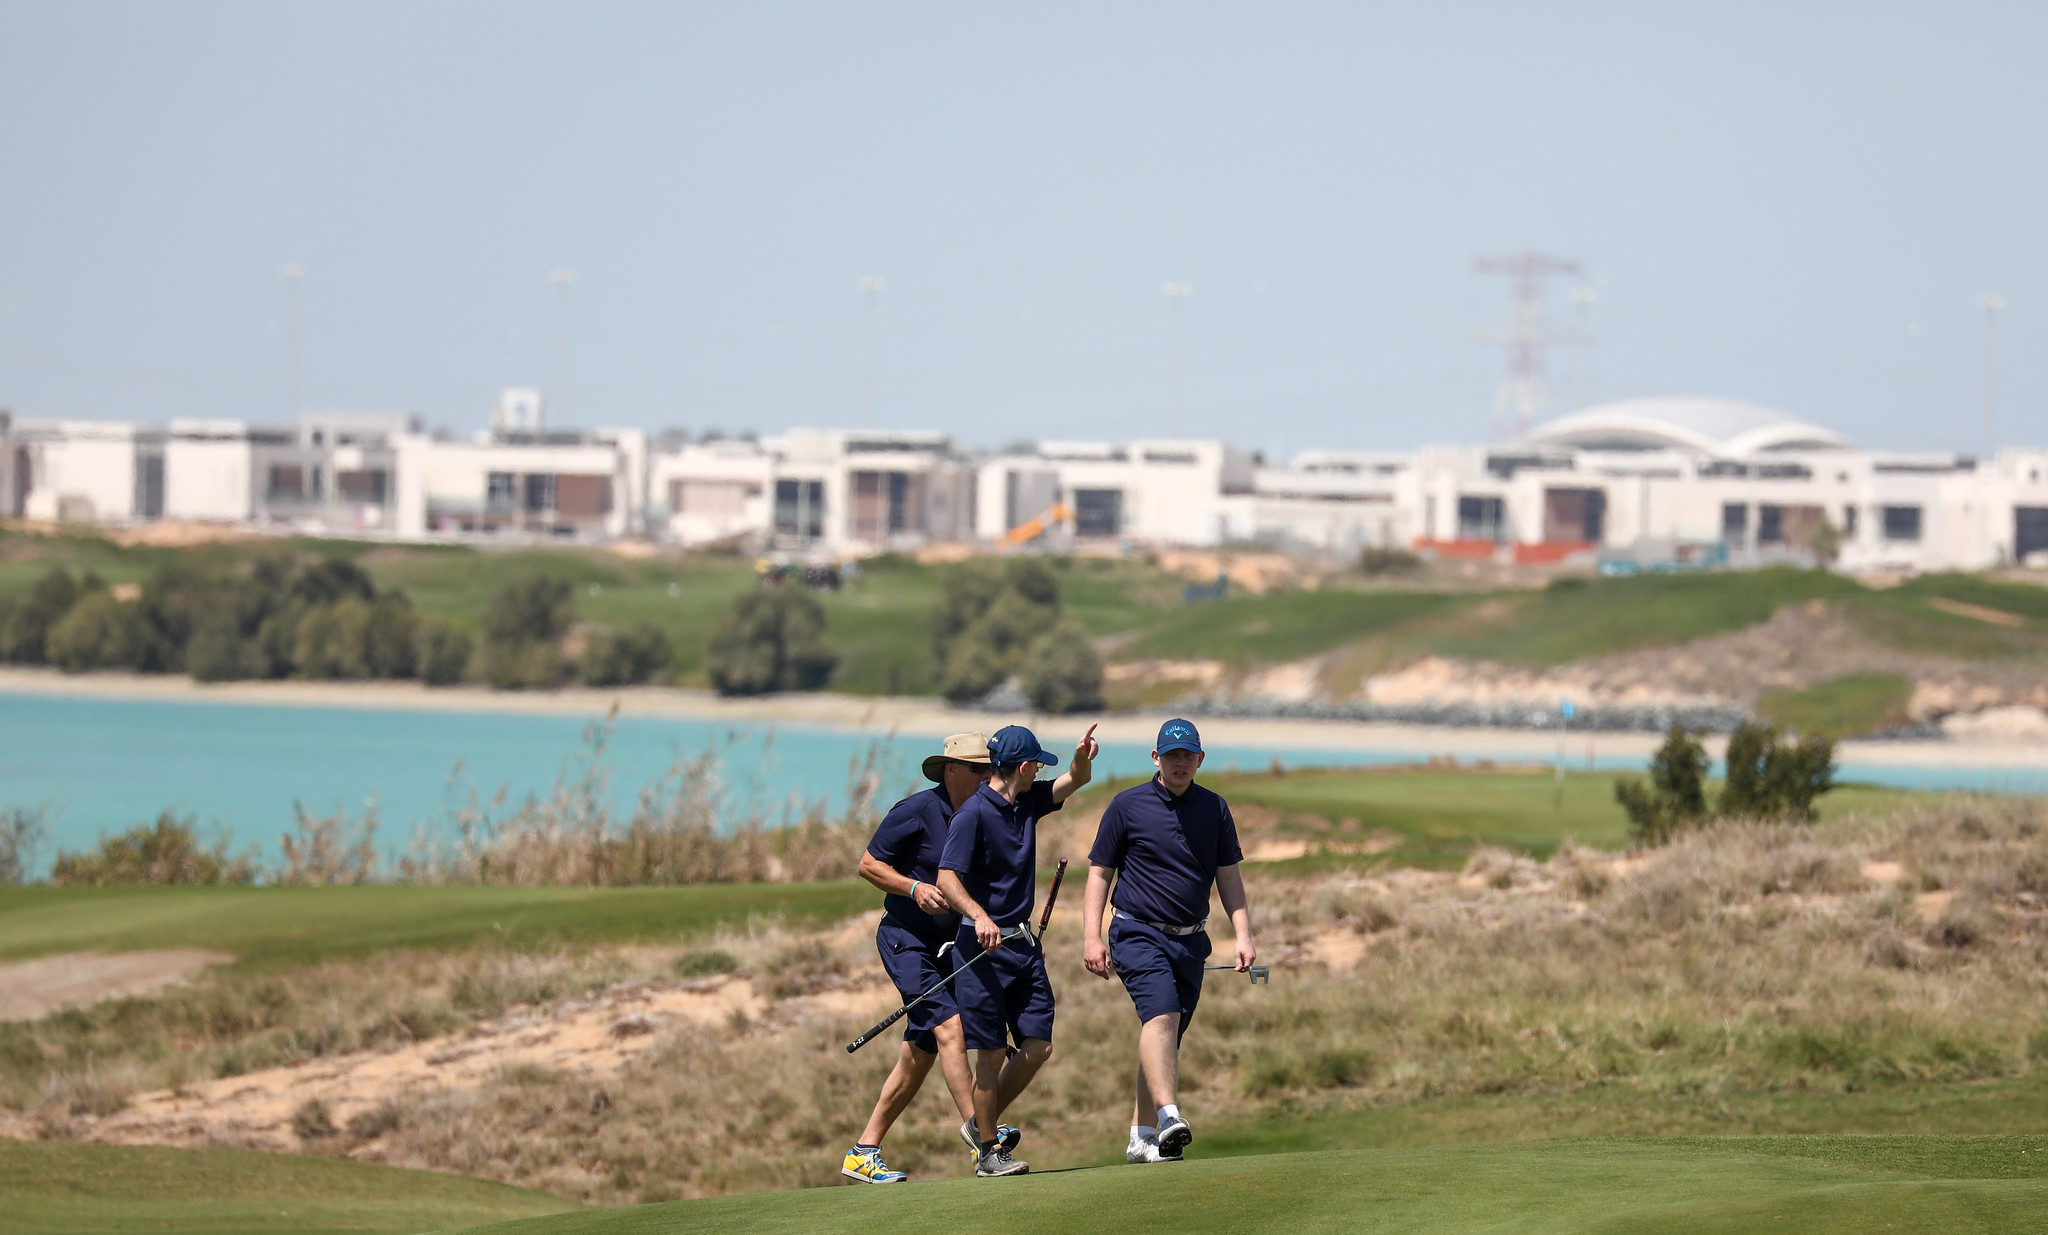 Golf, Special Olympics World Summer Games 2019, Abu Dhabi